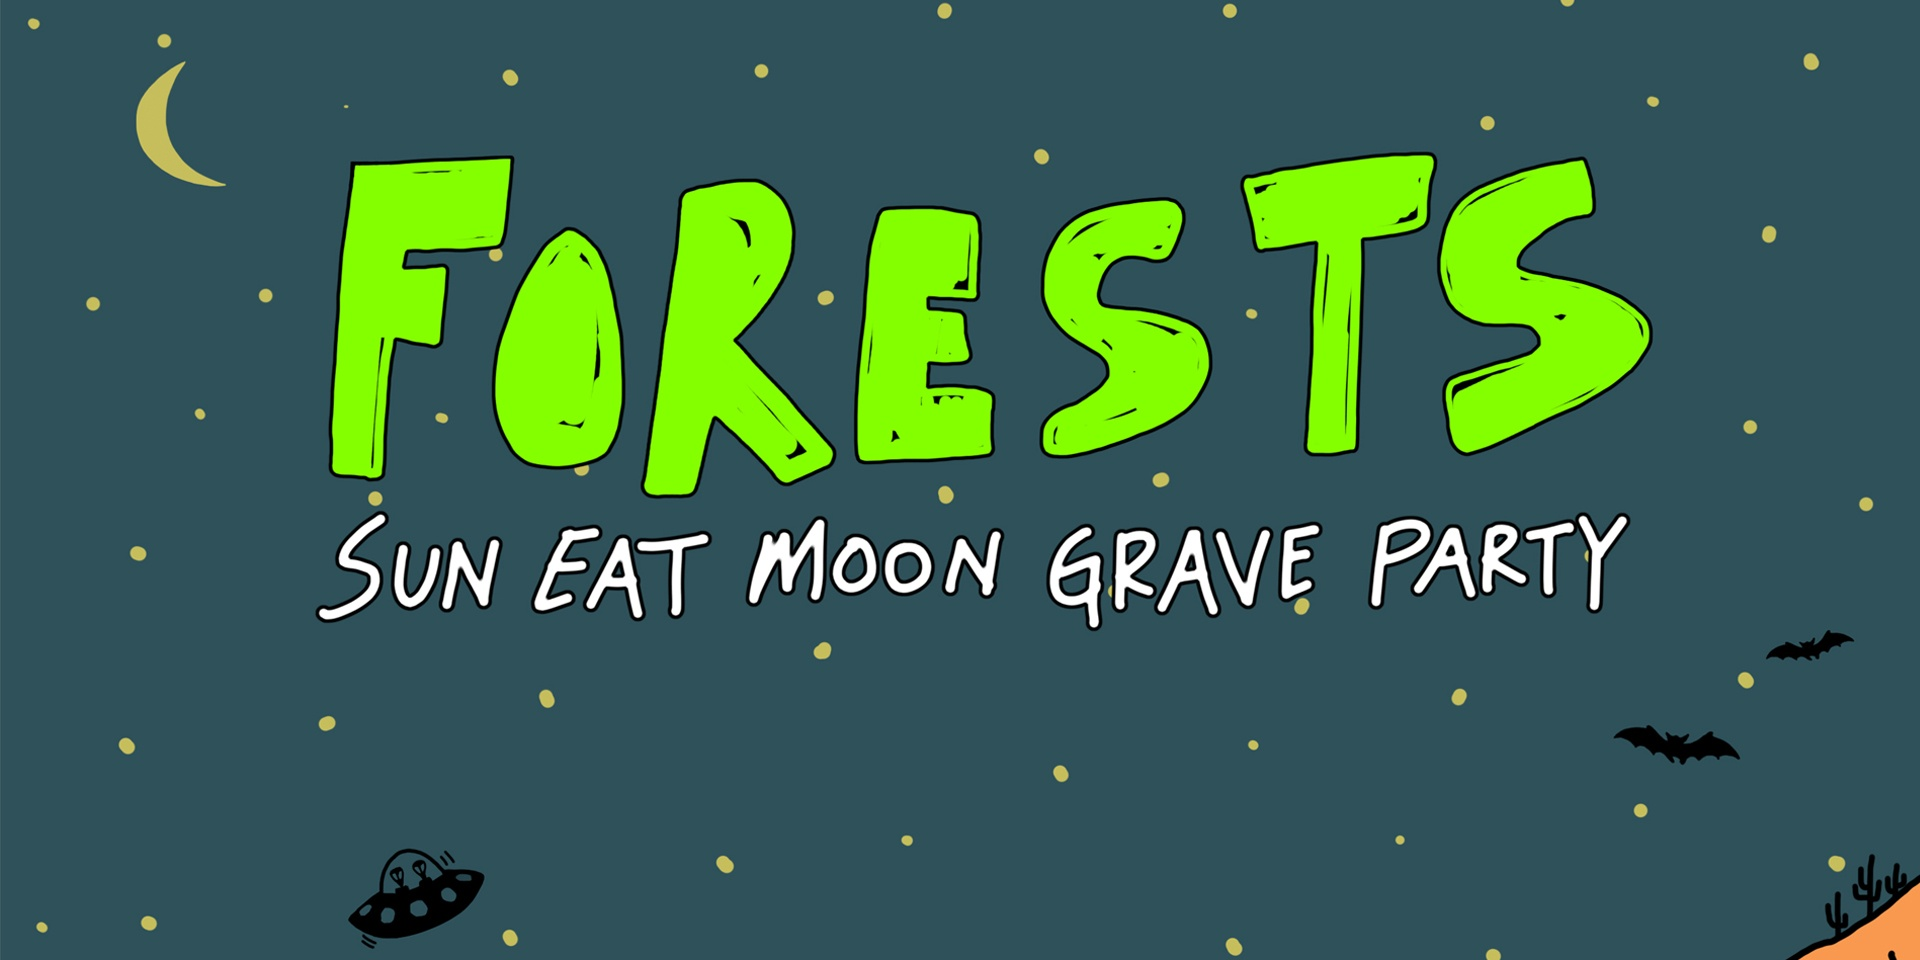 Stream Forests' wonderful sad rave album, Sun Eat Moon Grave Party